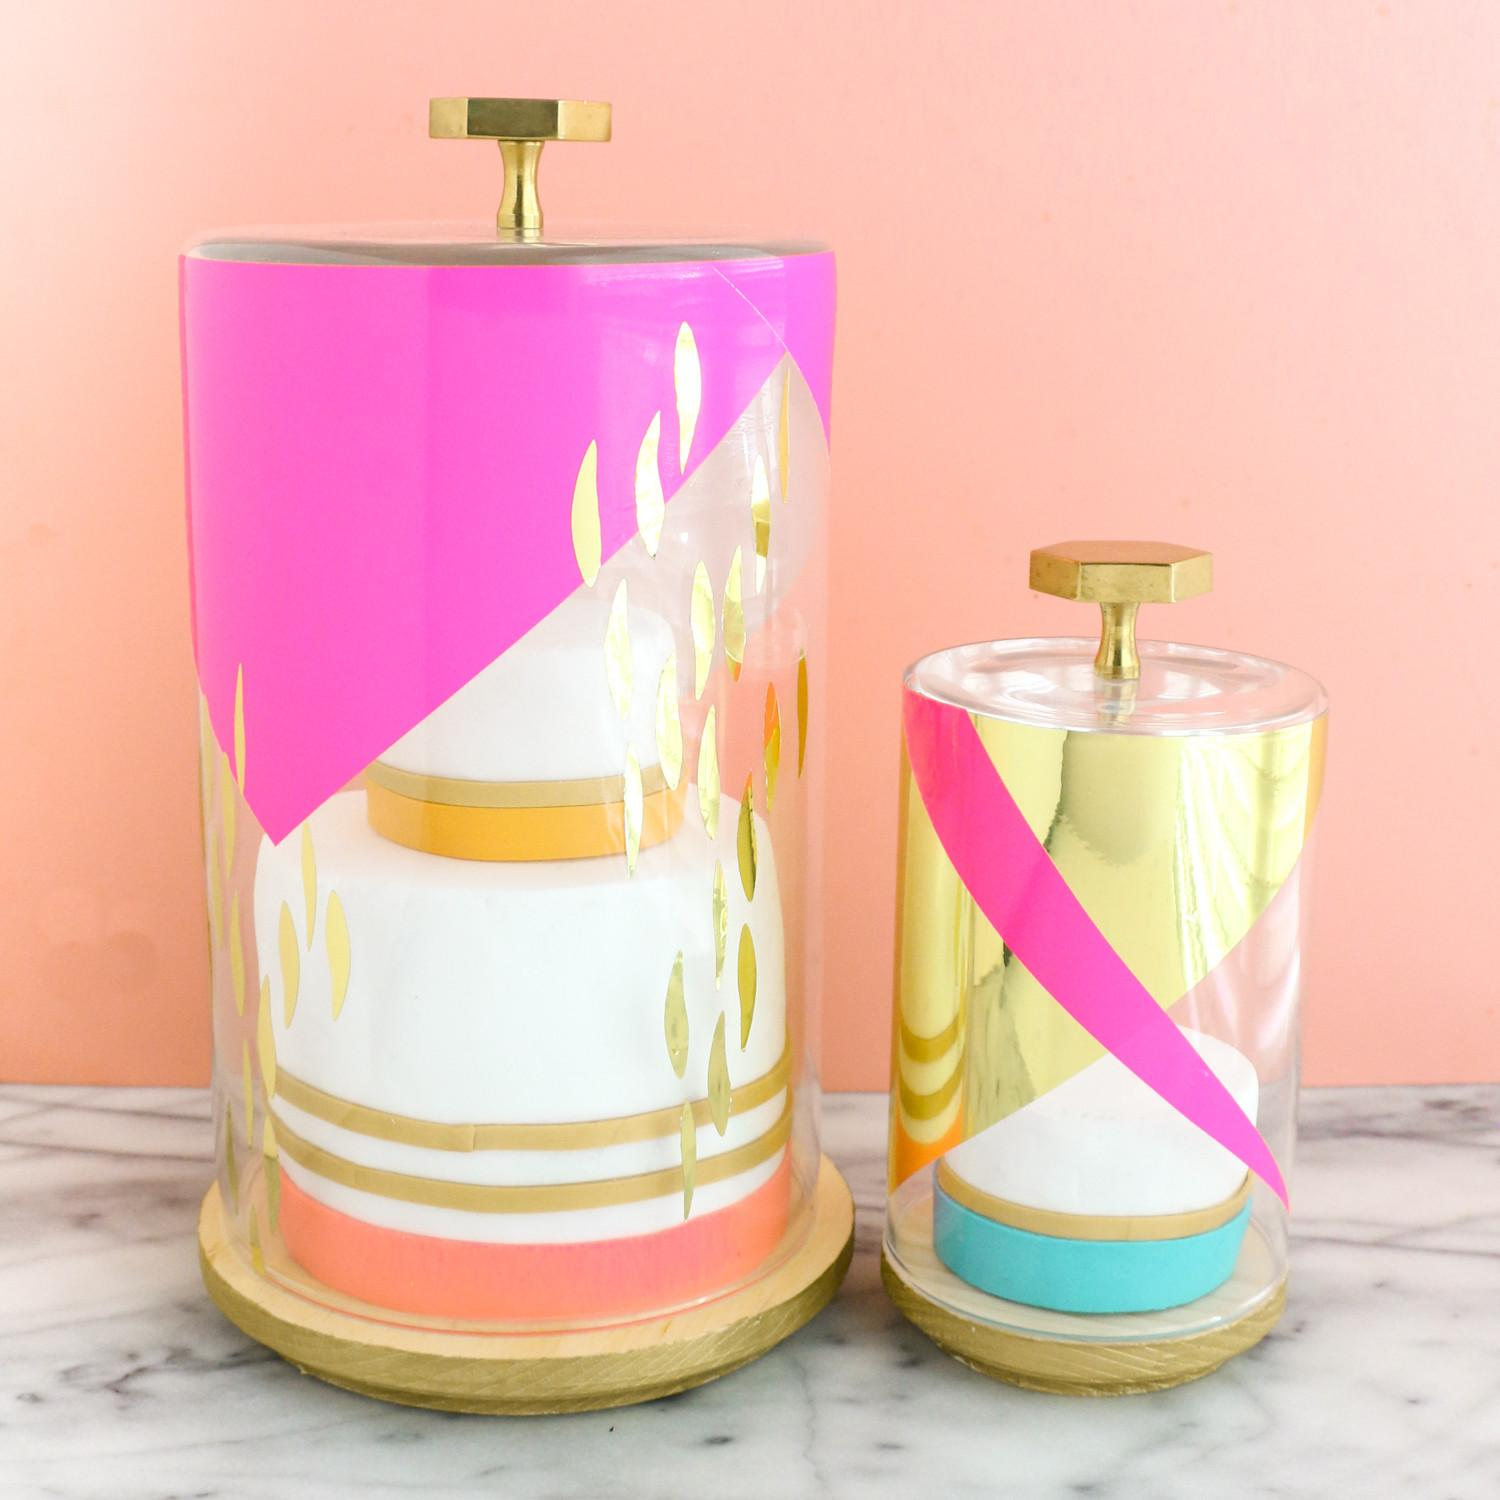 Diy Modern Cake Stands Kailo Chic Life